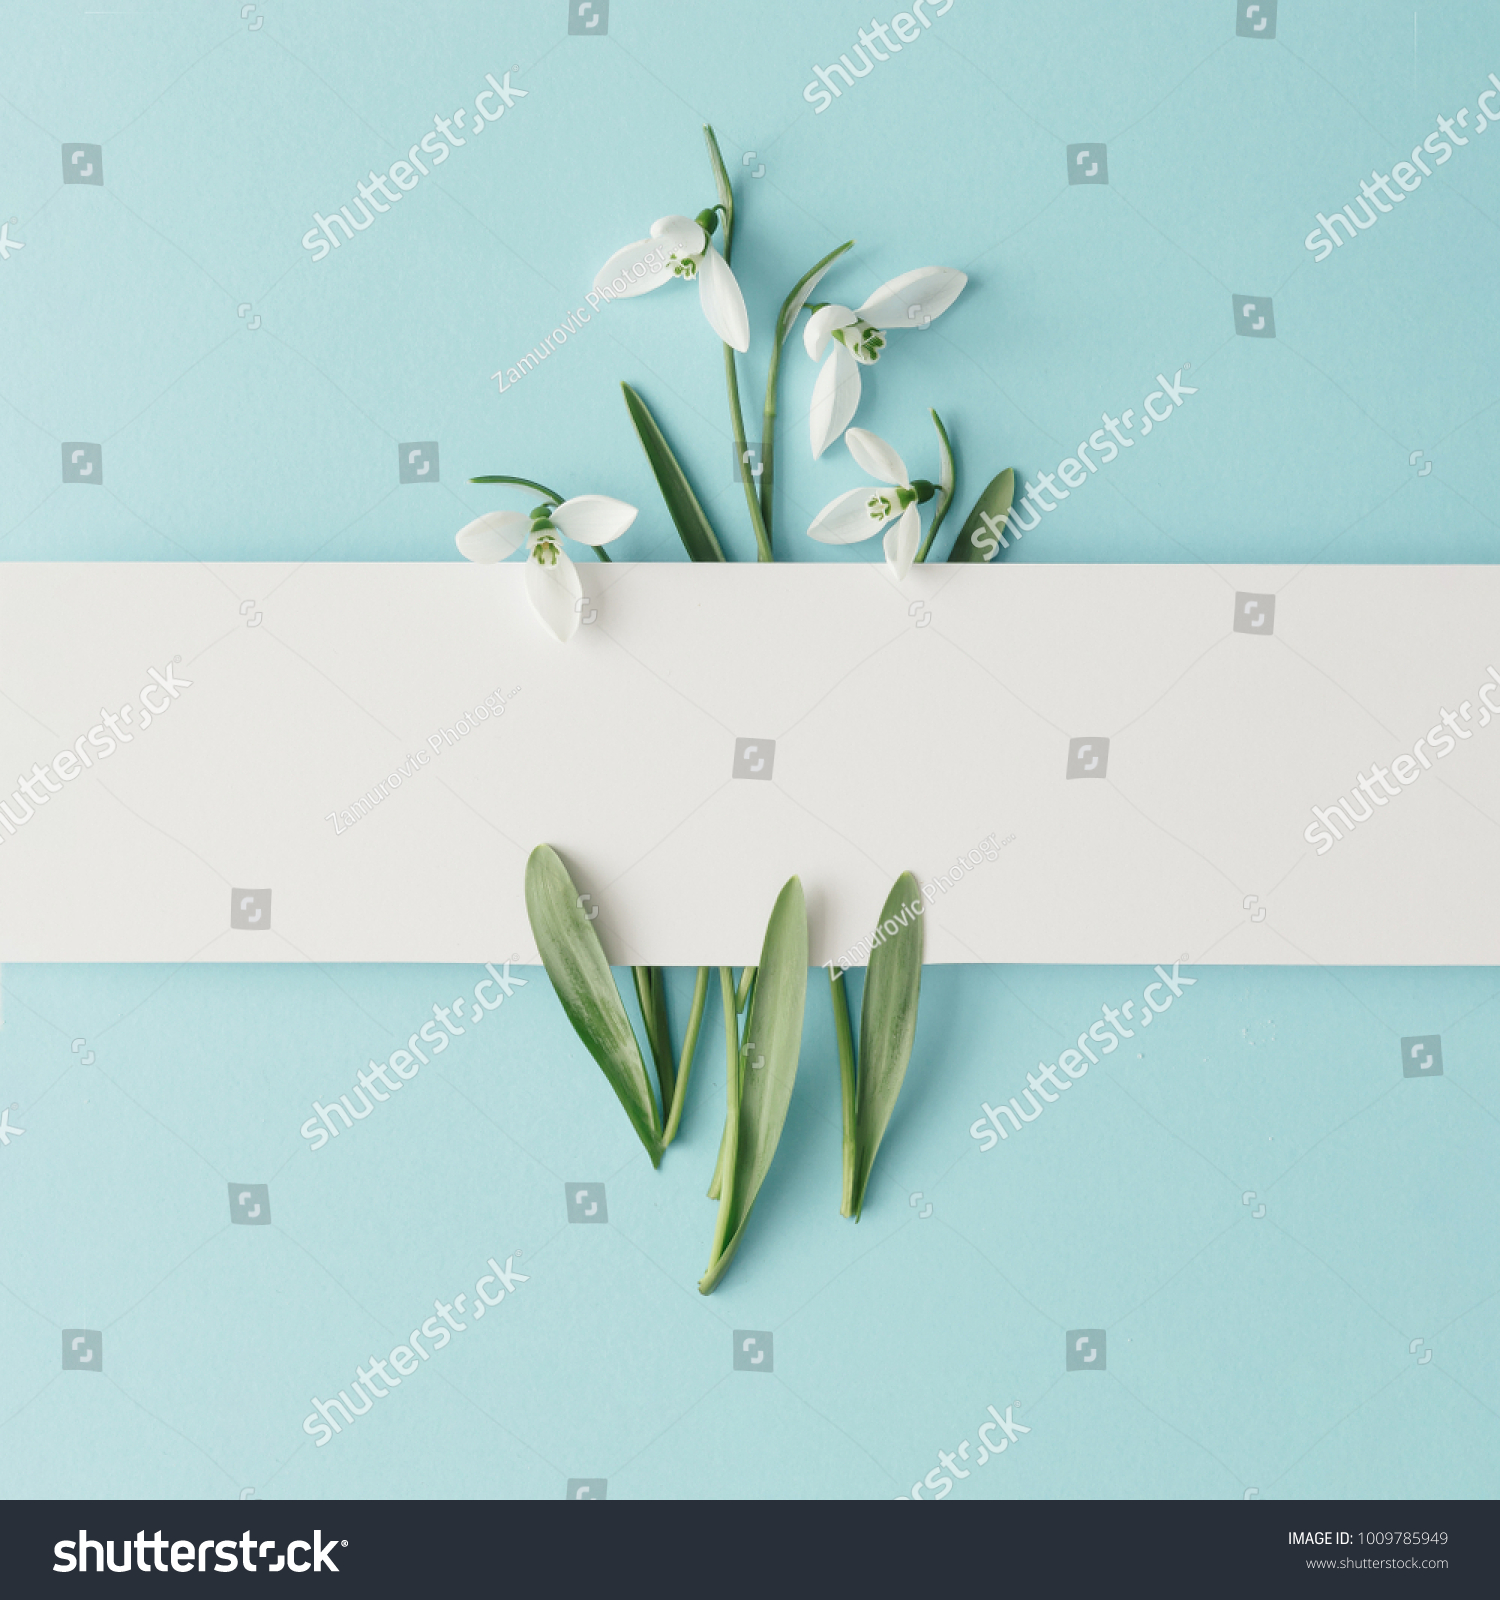 Creative layout made with snowdrop flowers on bright blue  background. Flat lay. Spring minimal concept. #1009785949